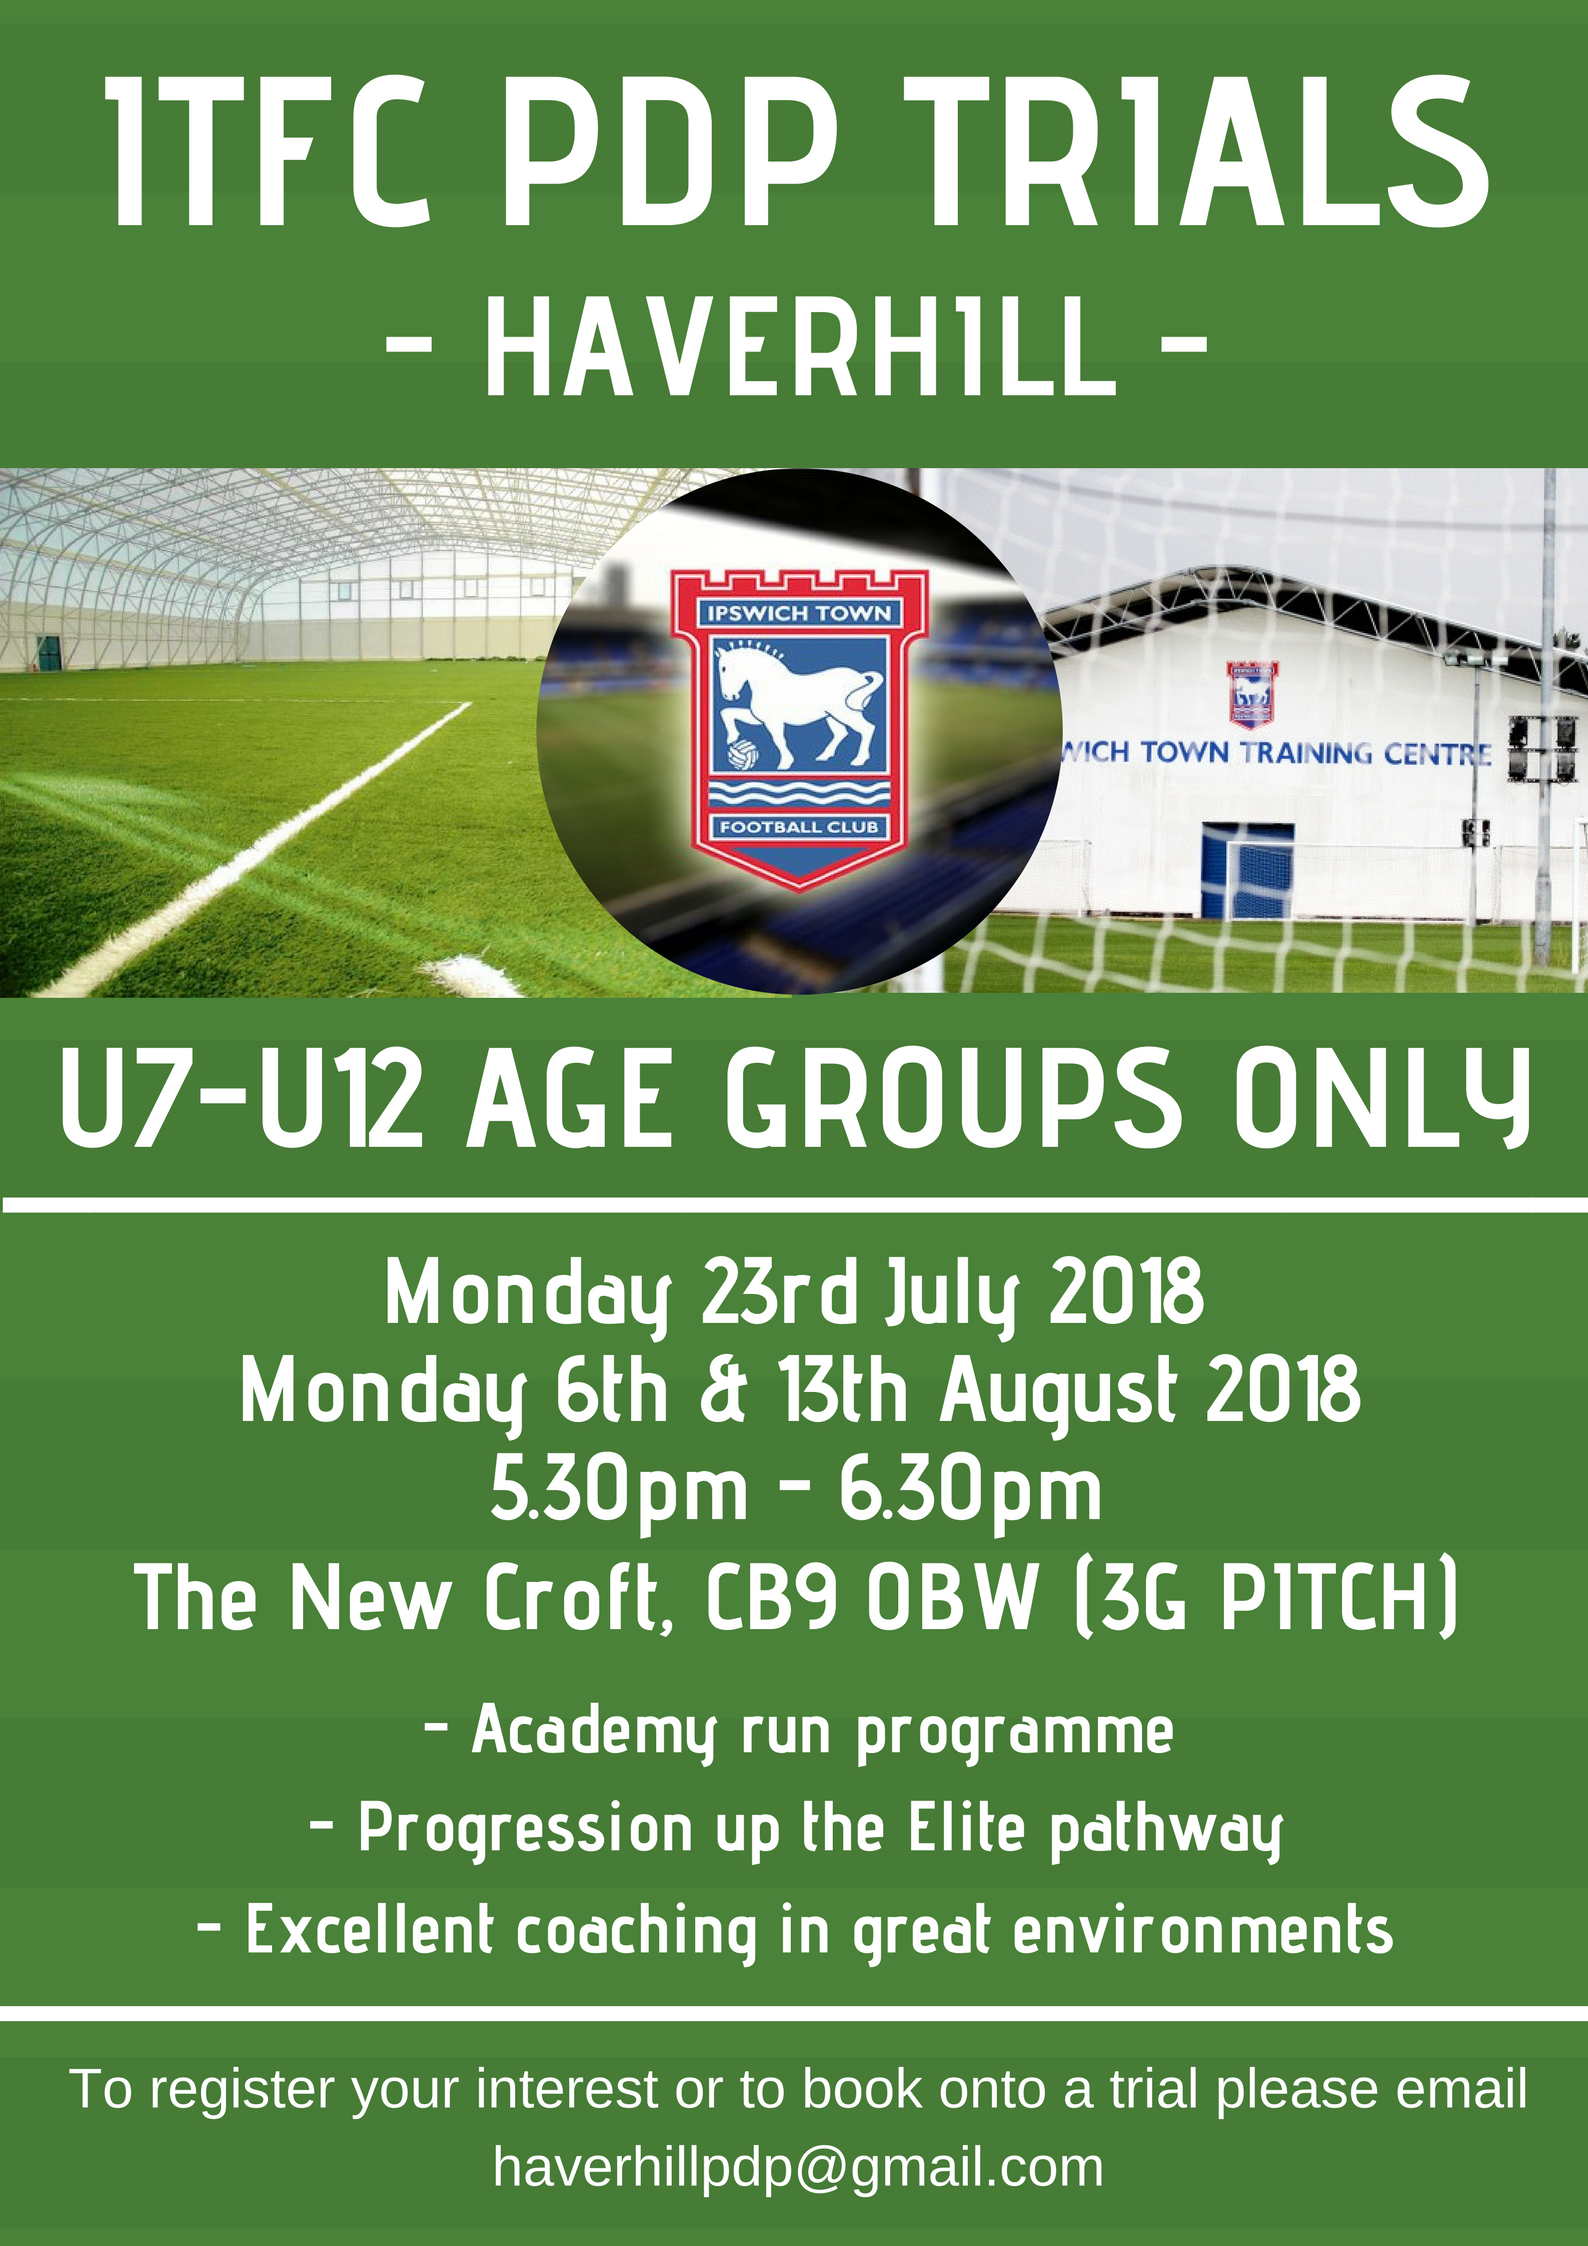 ITFC PDP Trial @ The New Croft